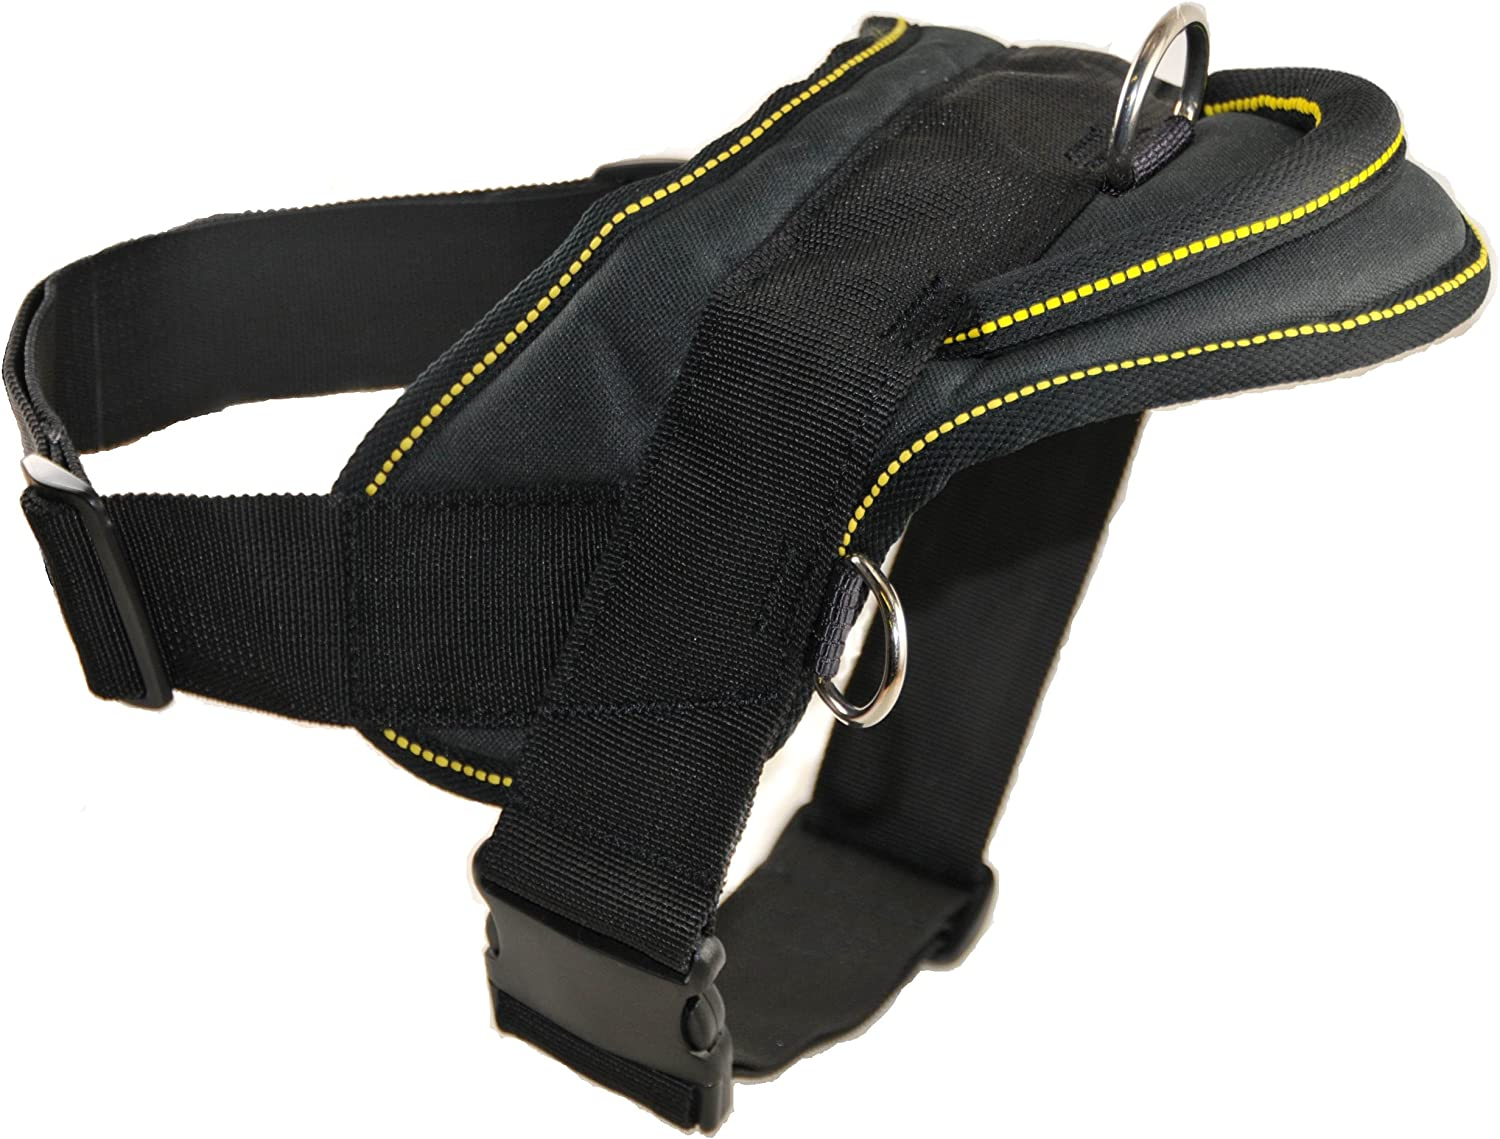 Dean & Tyler DT Dog Harness with Trim, S, Black  Yellow